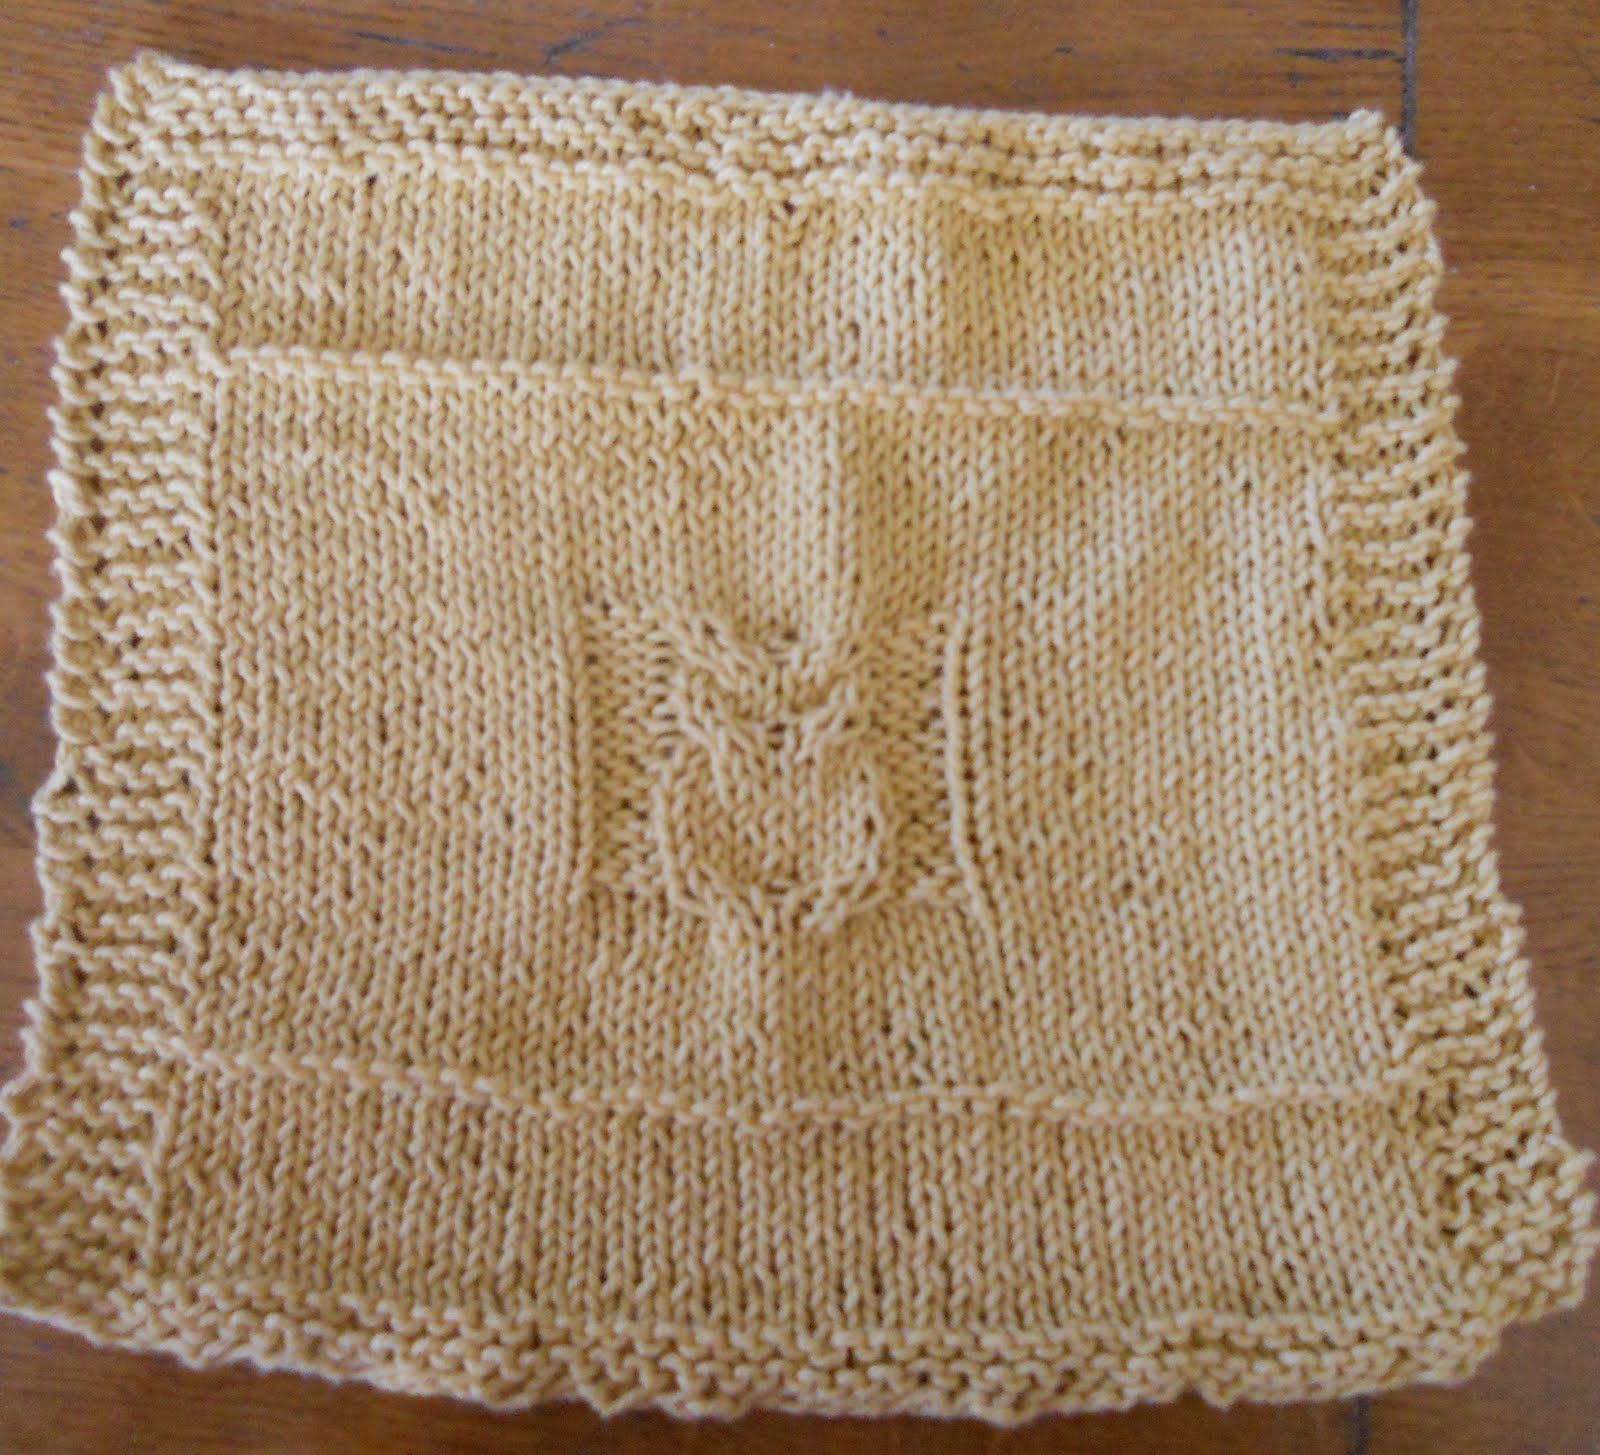 Owl Dishcloth Knitting Patterns Free : Smiles are contagious nantucket knitter owl washcloth